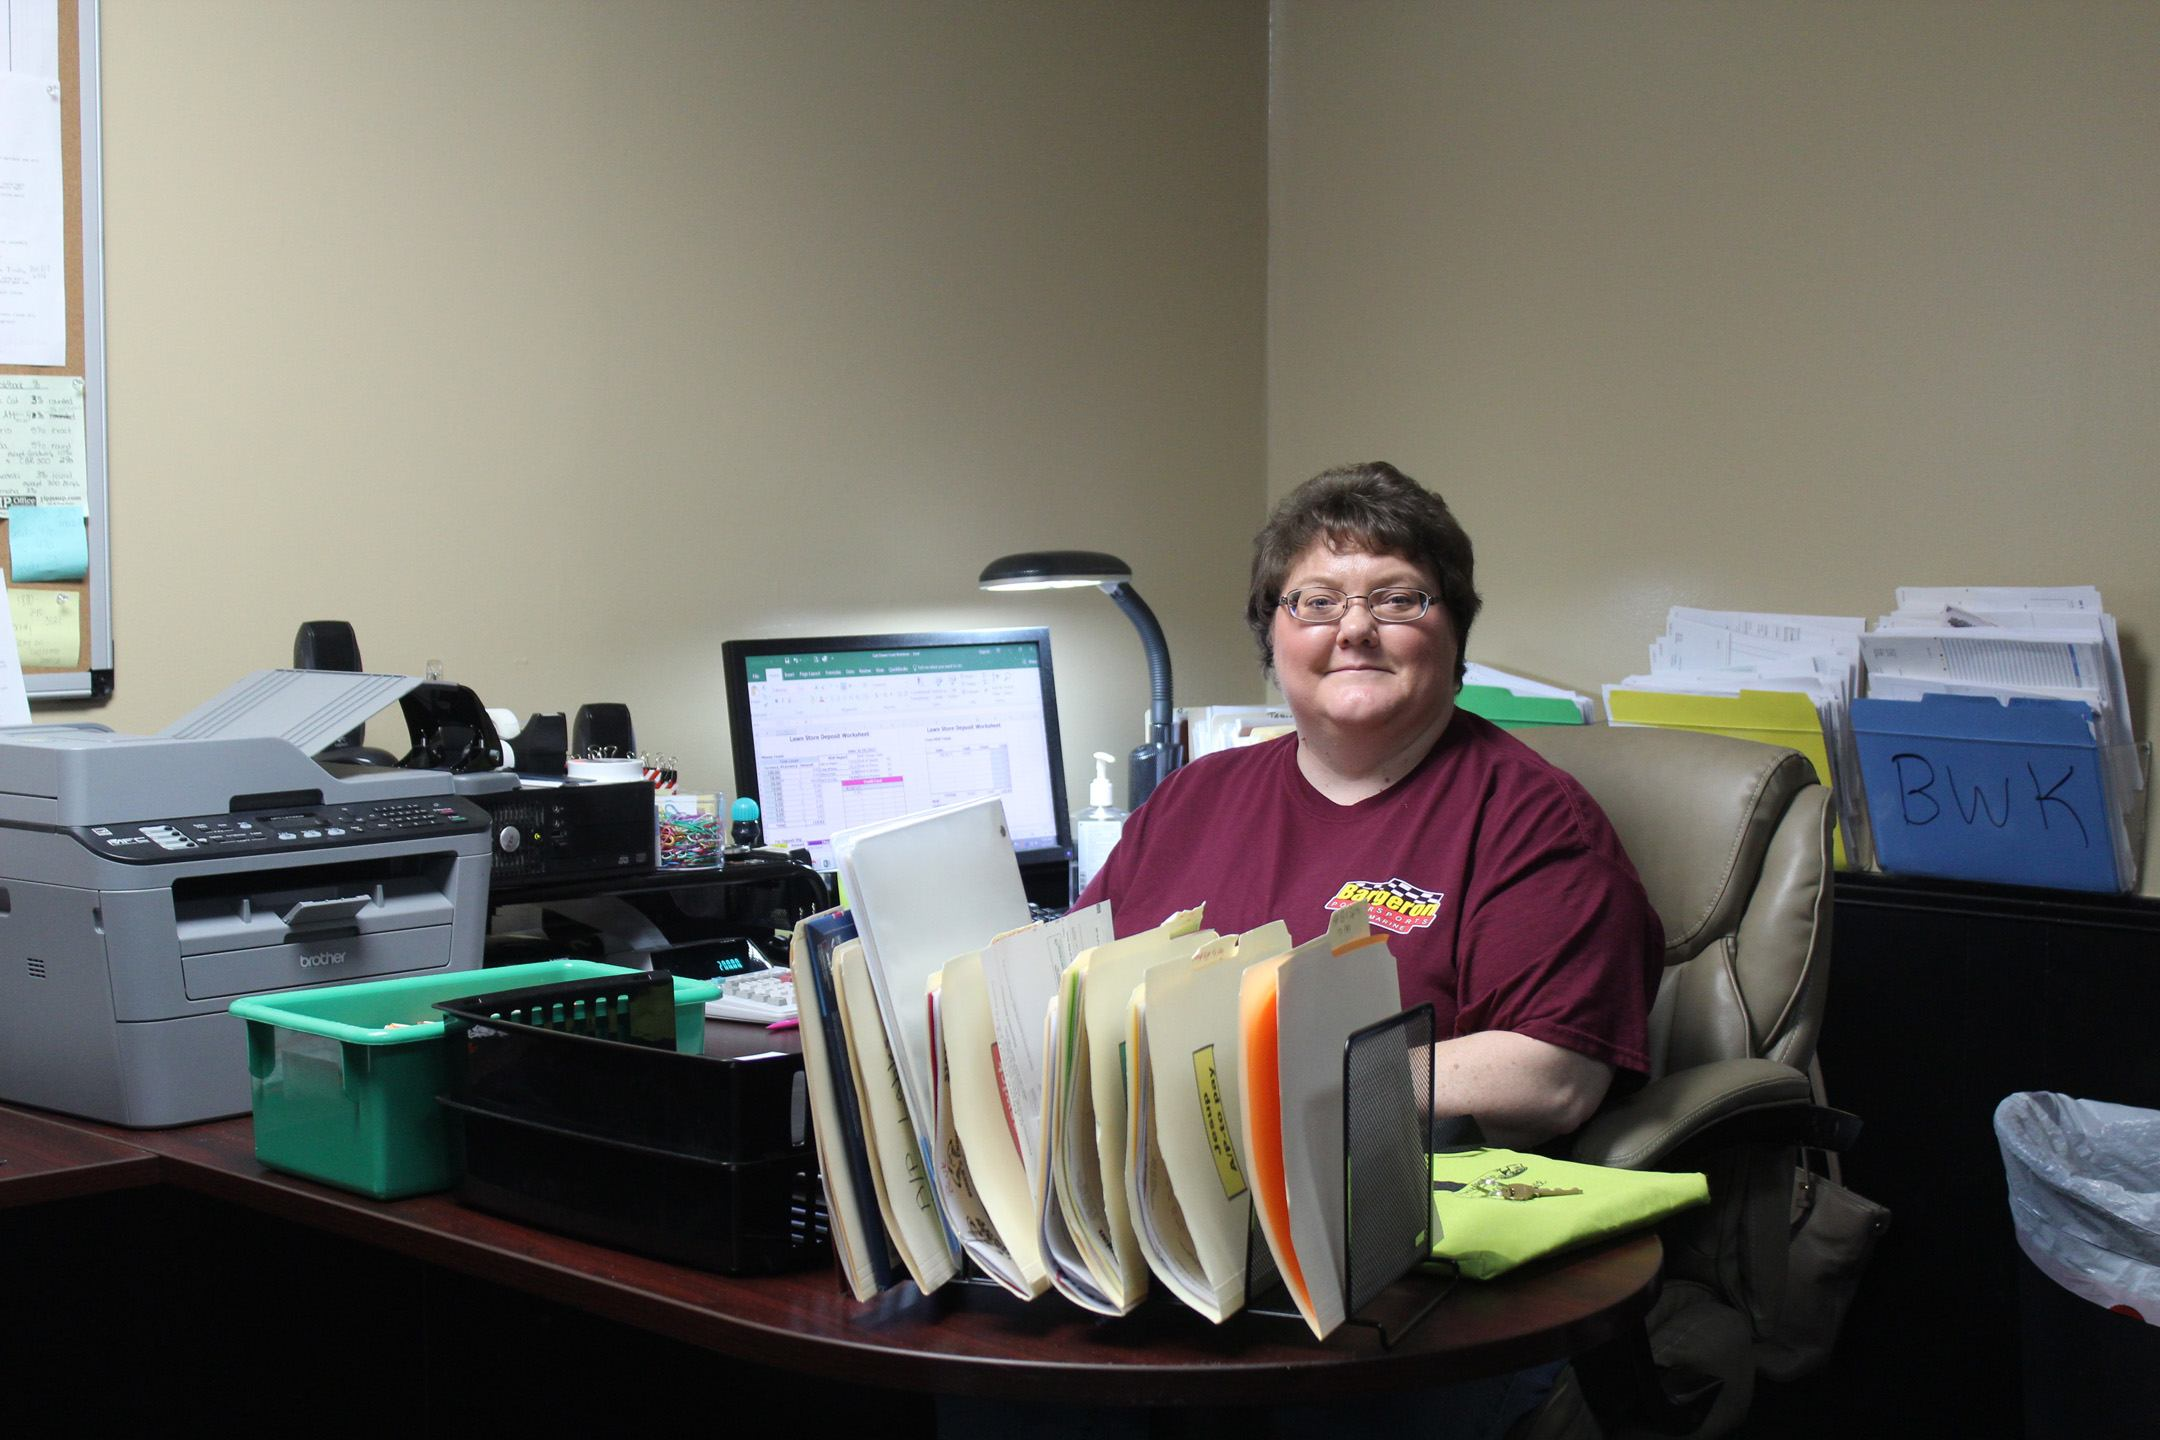 Krista Spivey | Accounting Office